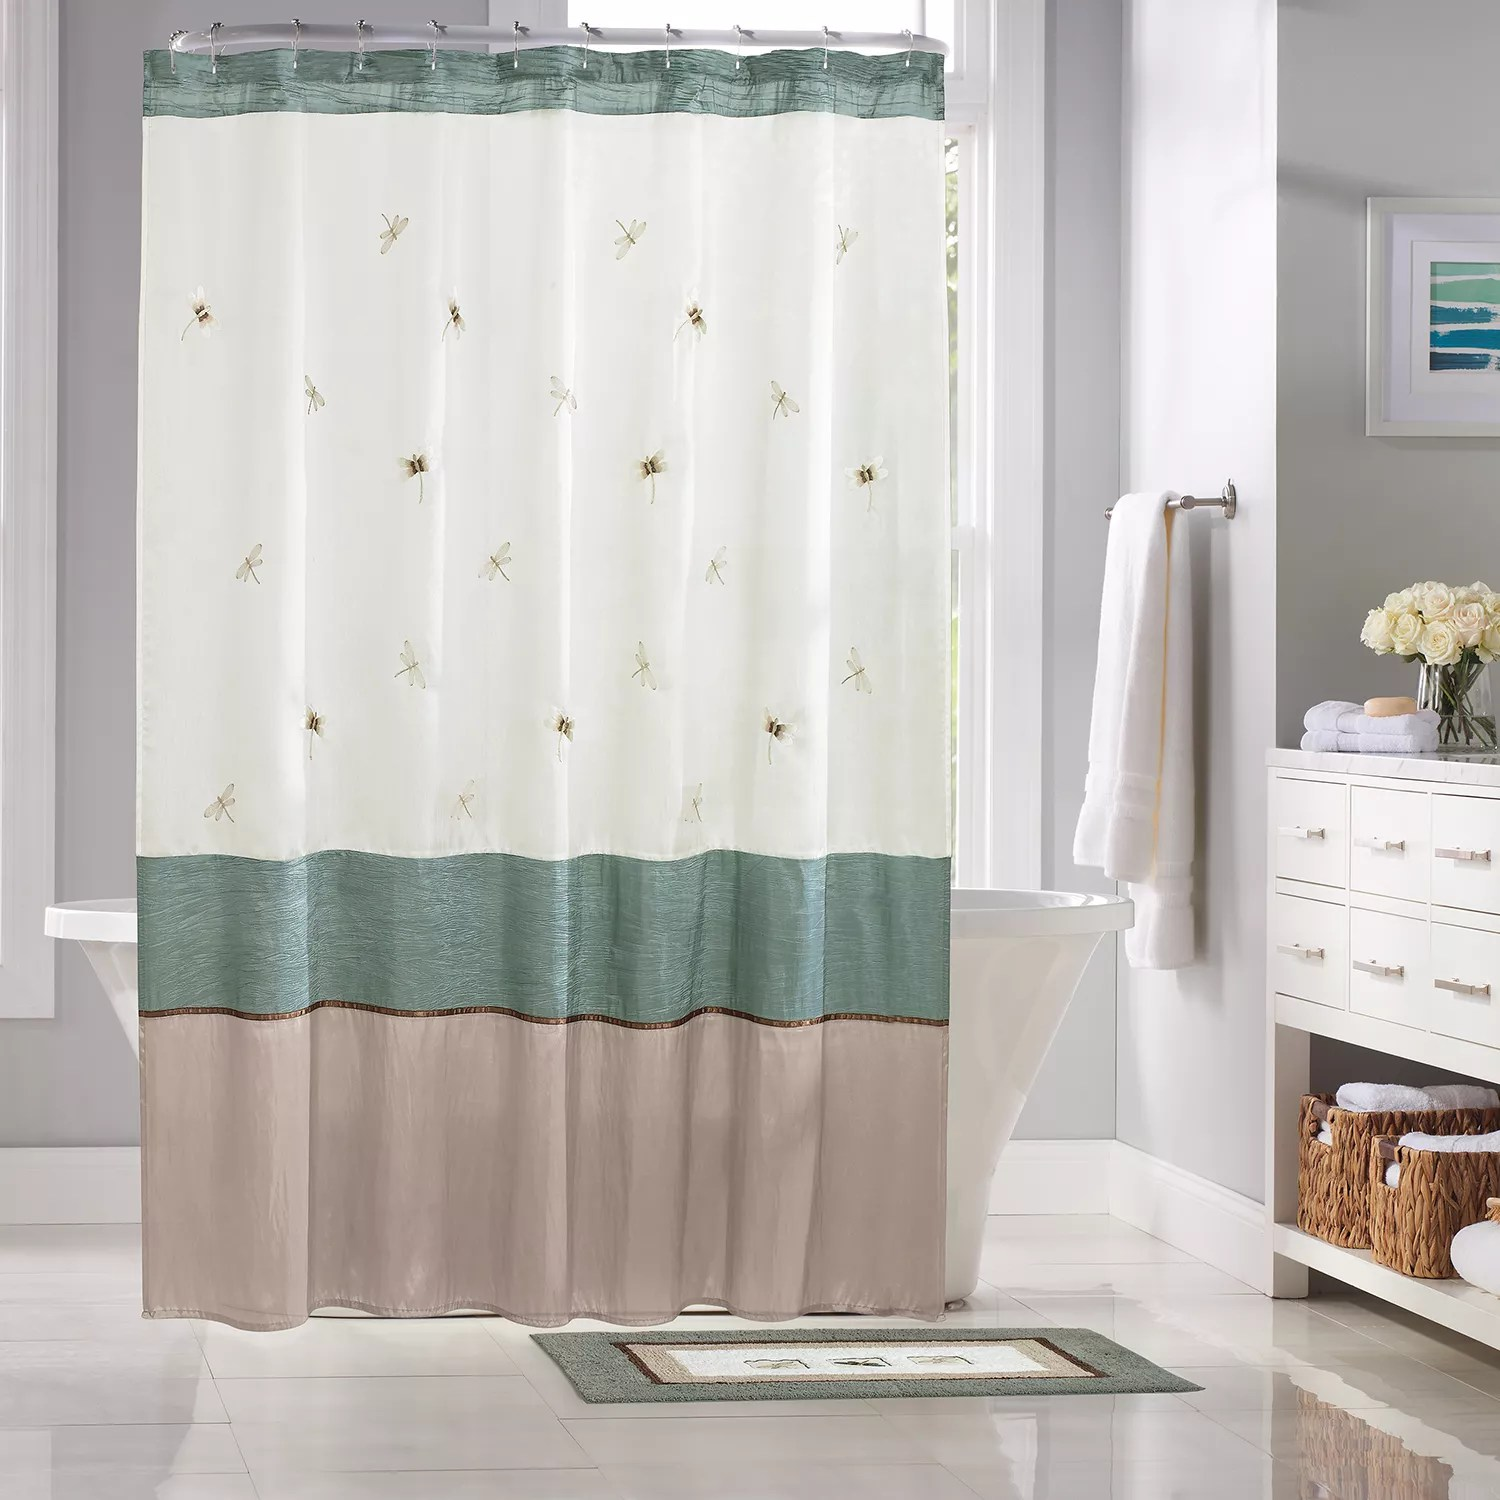 82 Shower Curtain Home Classics Shalimar Dragonfly Fabric Shower Curtain